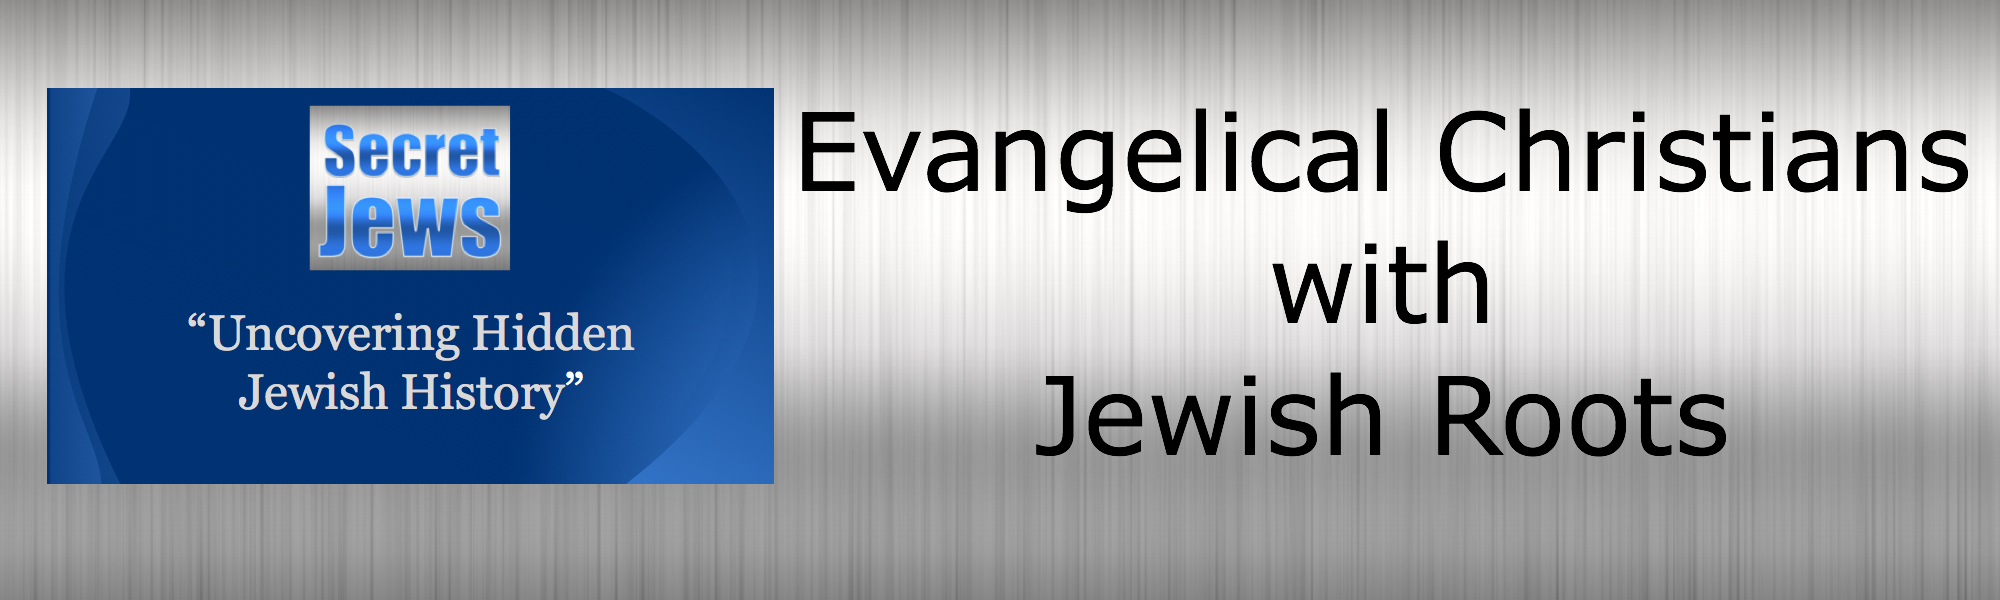 Secret Jews Evangelical Christians